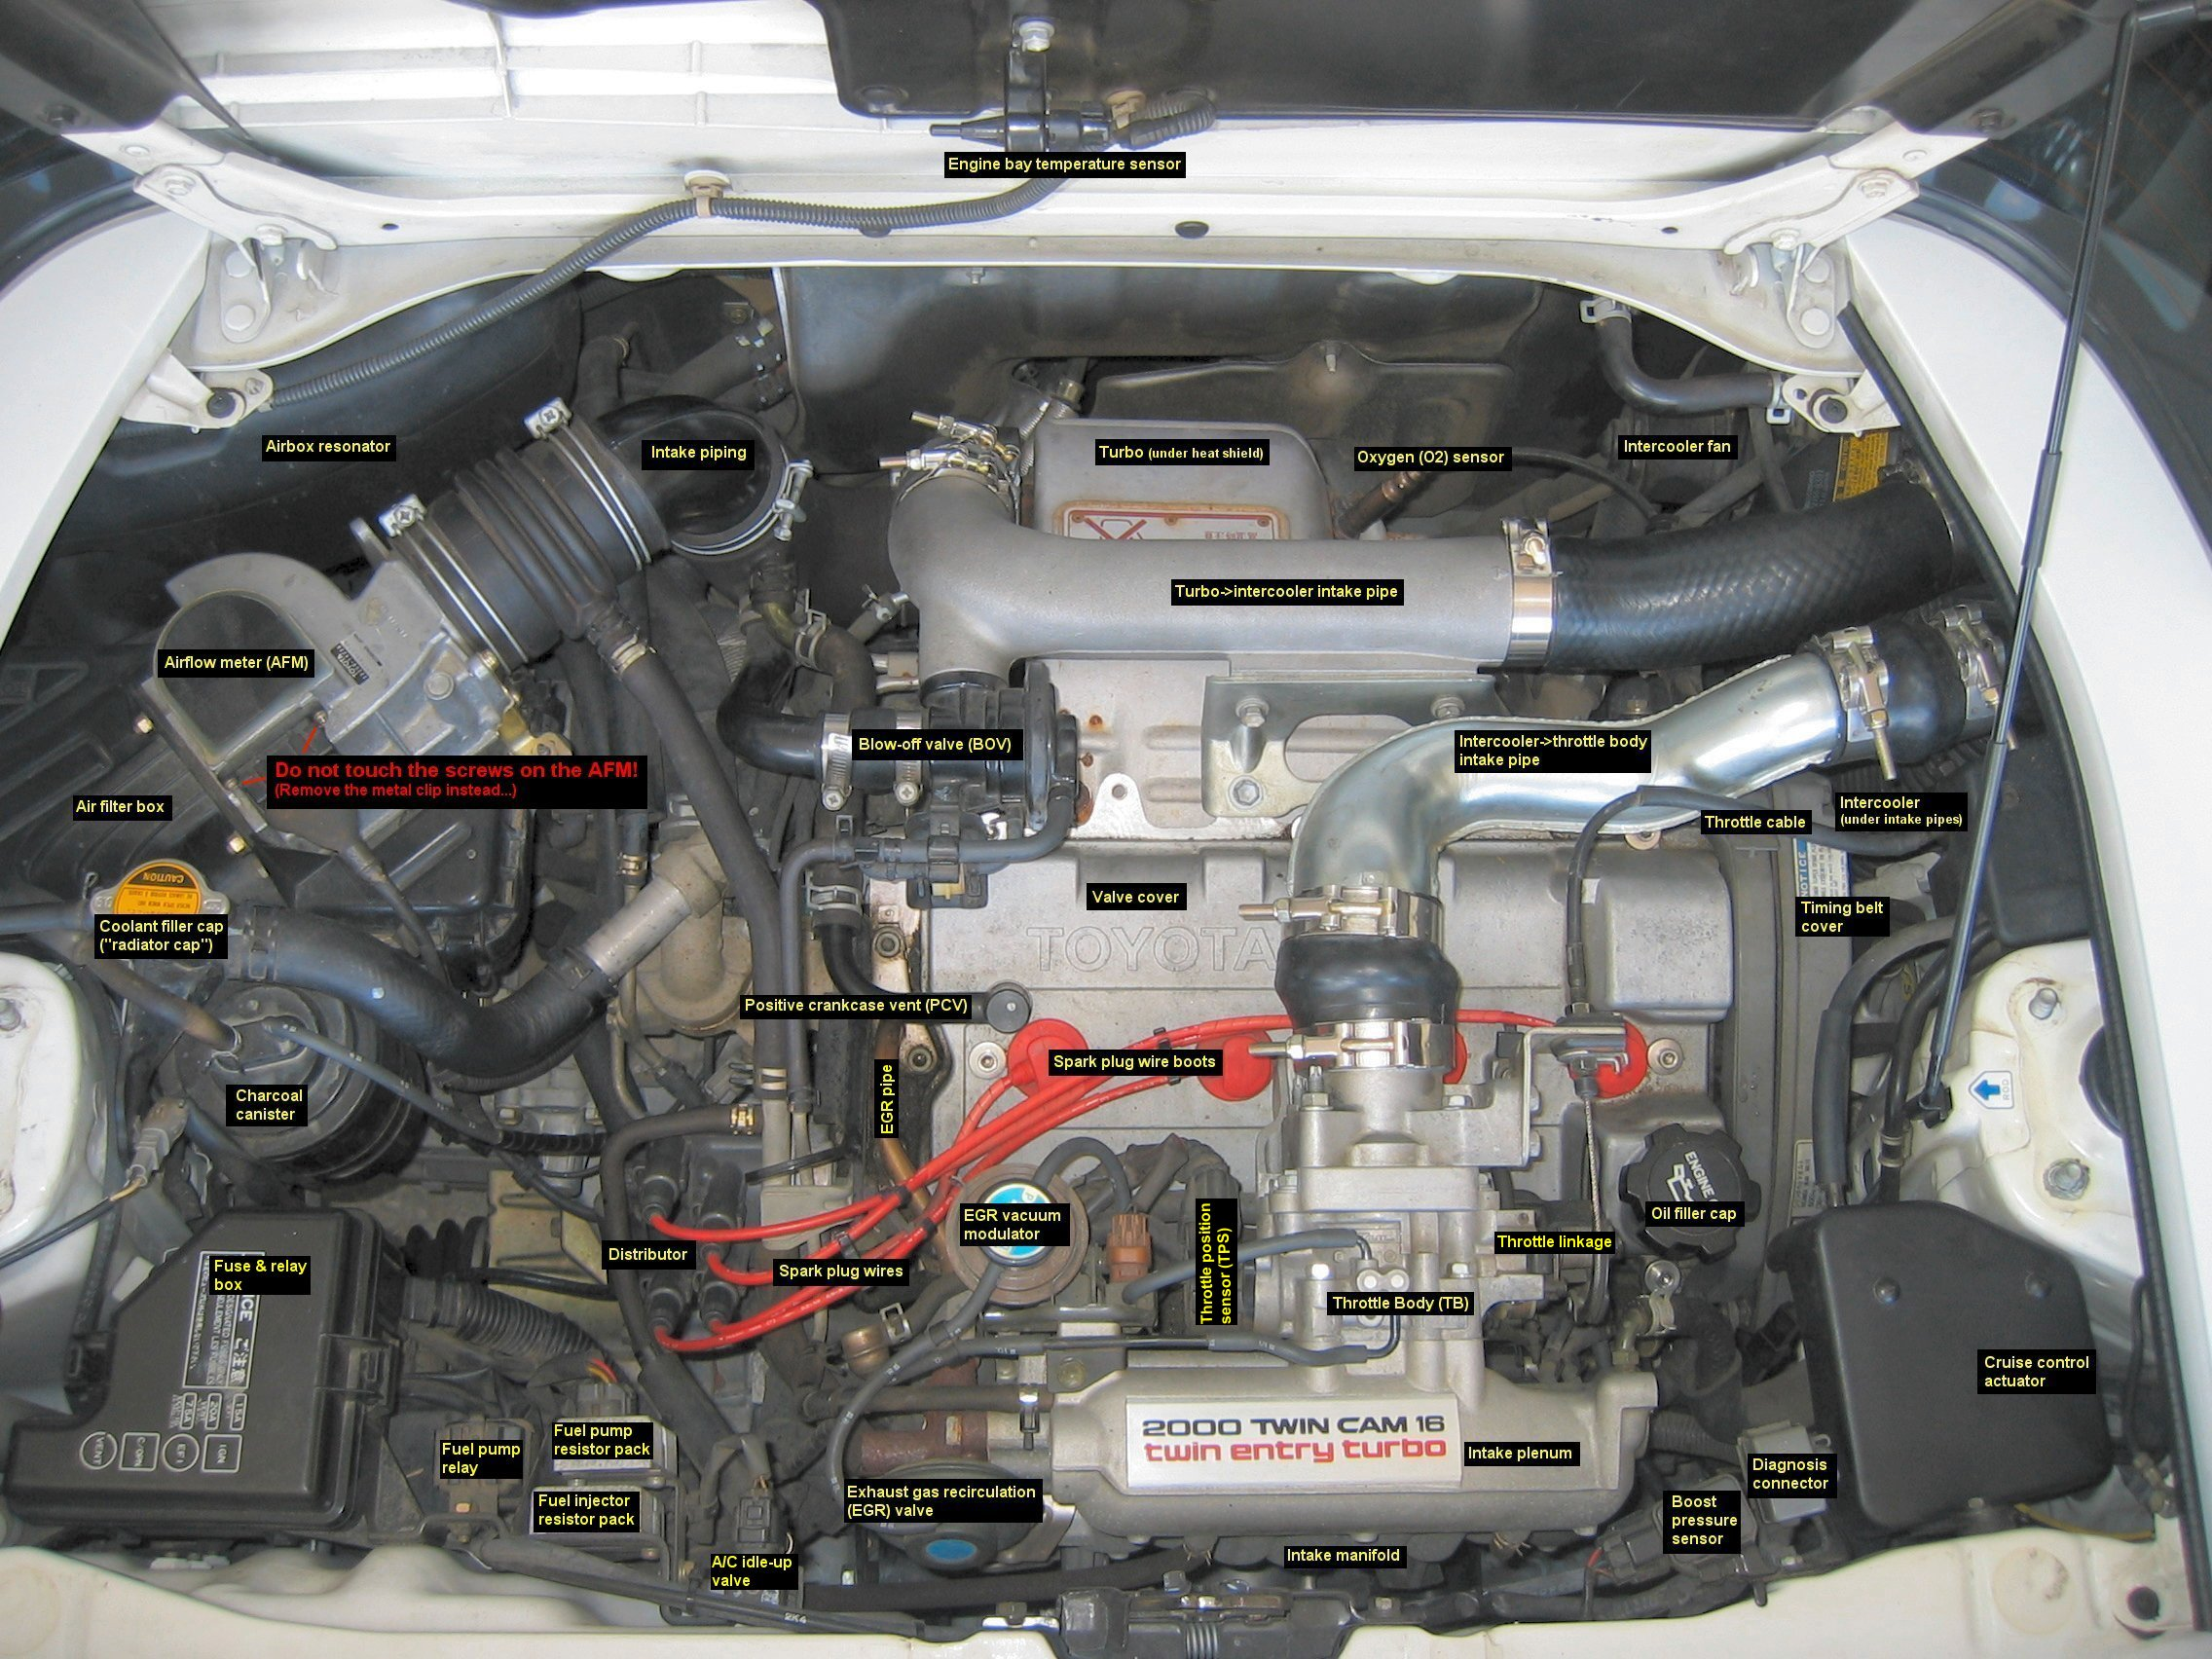 Strange Wiring Harness E36 Engine Bay 37 Diagram Images Of 1994 Bmw 318 Engine01 E30 Caterpillar Odicis Shaved At